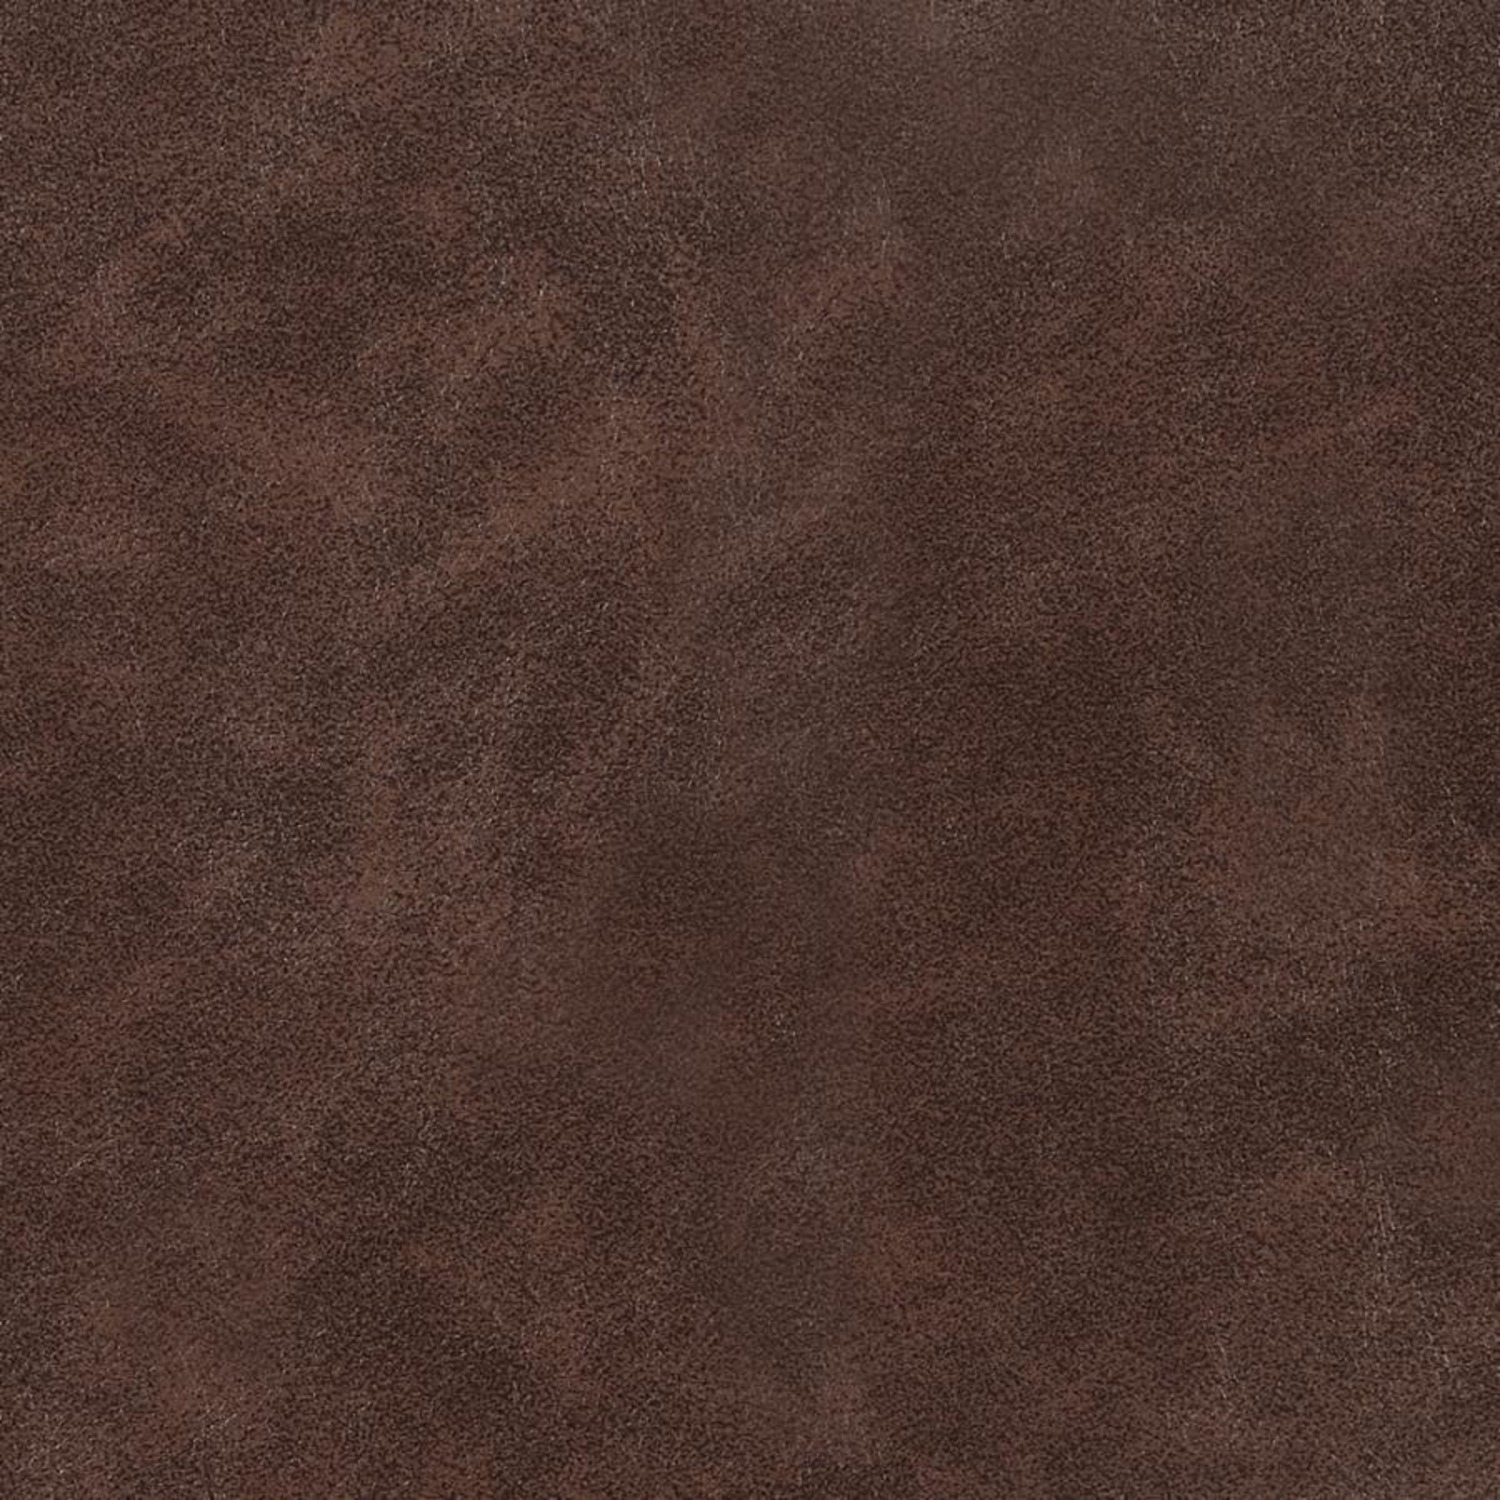 Recliner In Comfortable Brown Performance Leather - image-4